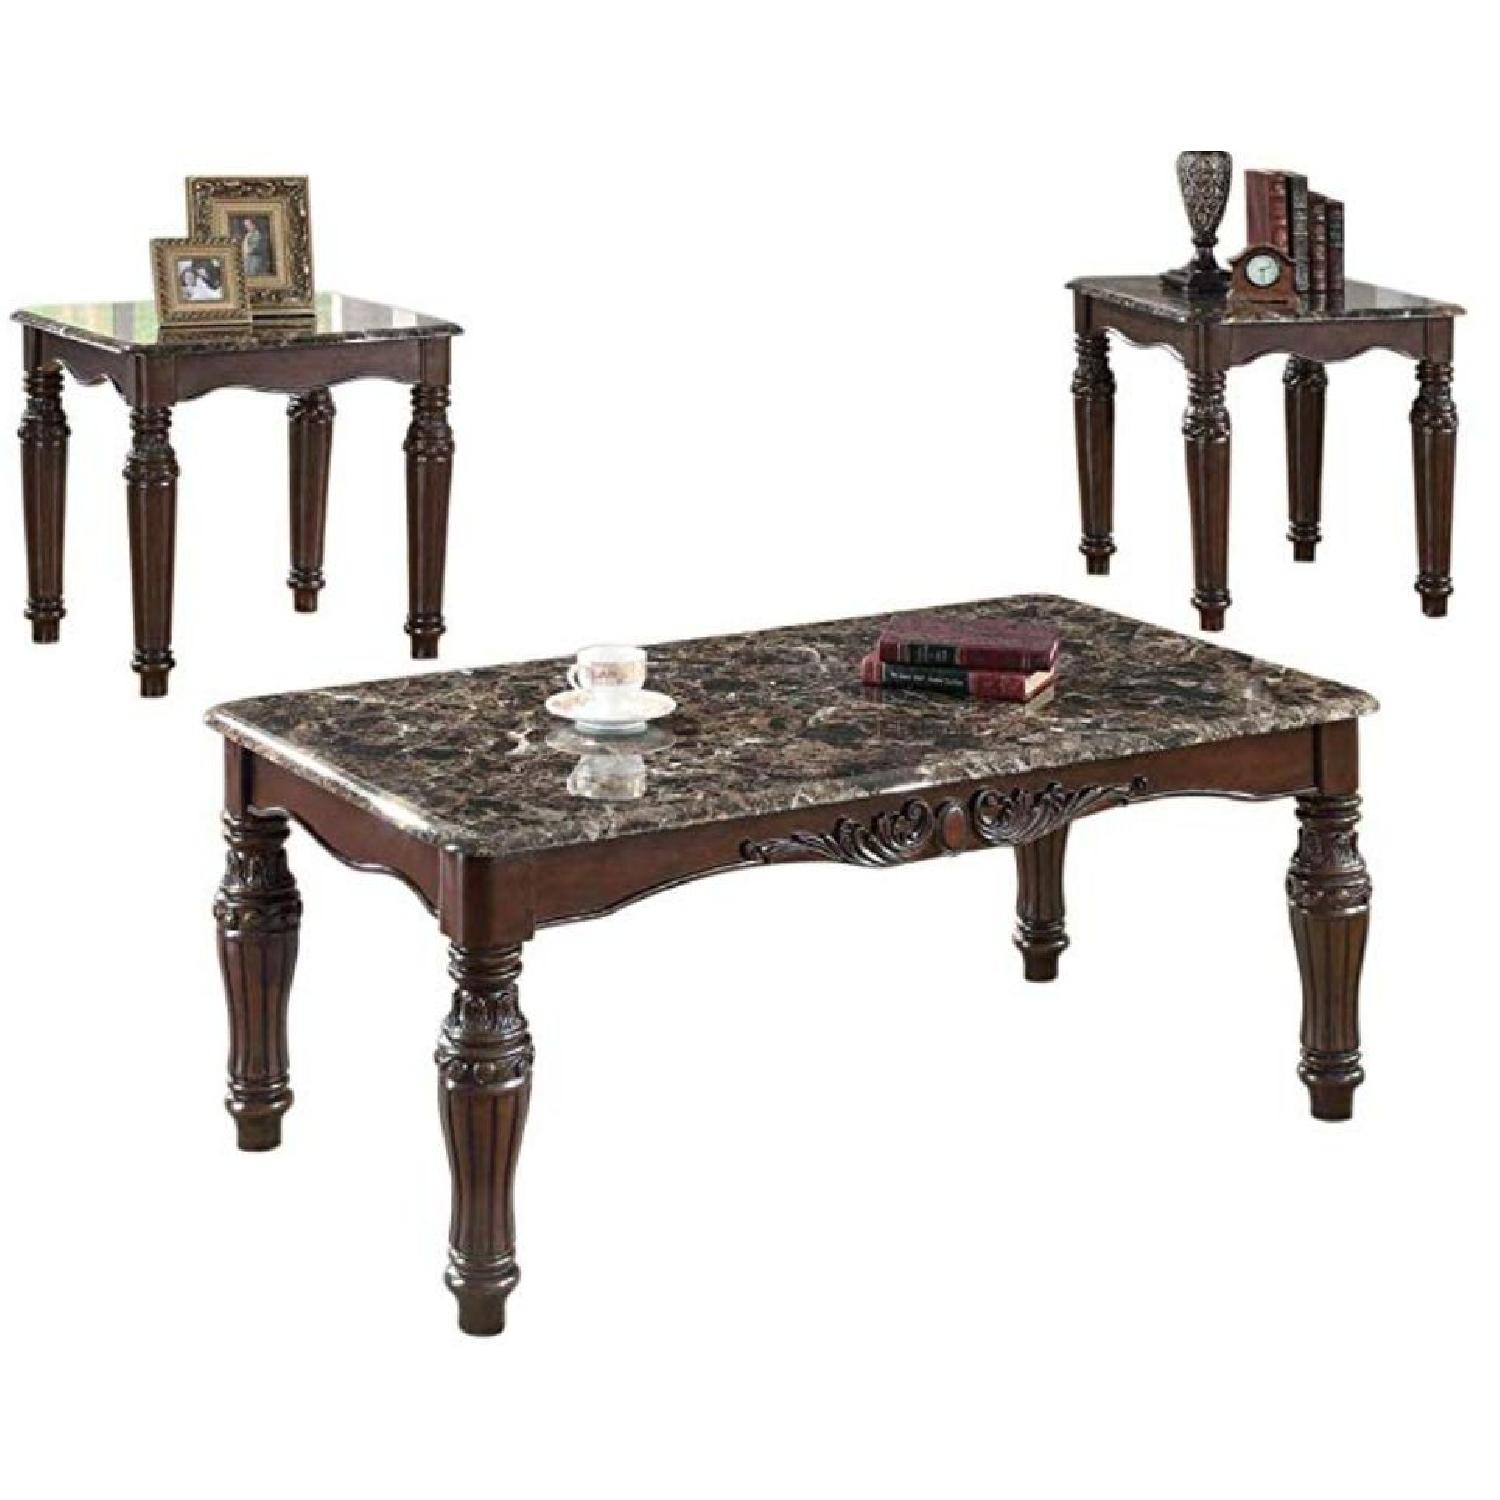 Faux Marble Table Top 3pcs Coffee Table Set - image-3